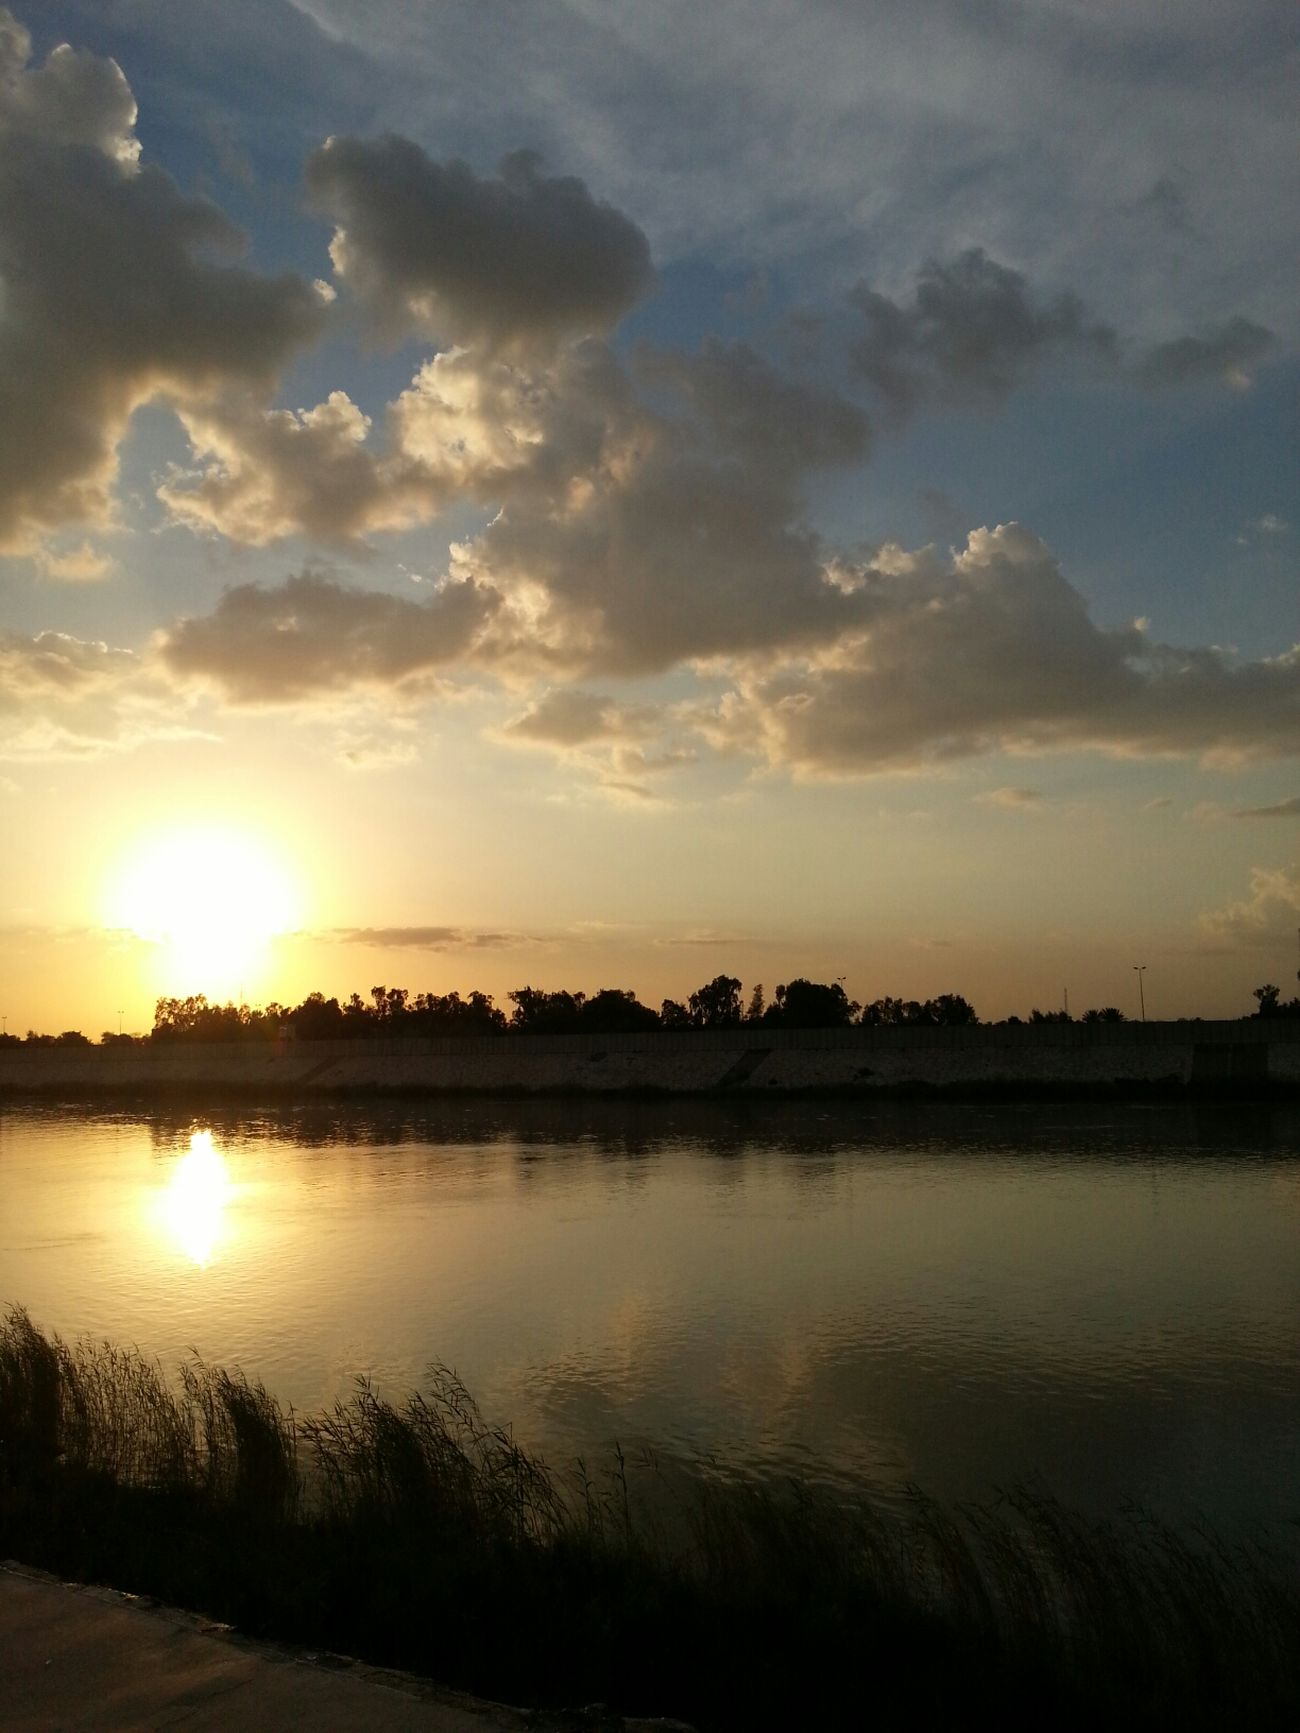 Very nice Weather Iraq Baghdad Enjoying Life Taking Photos ^-^